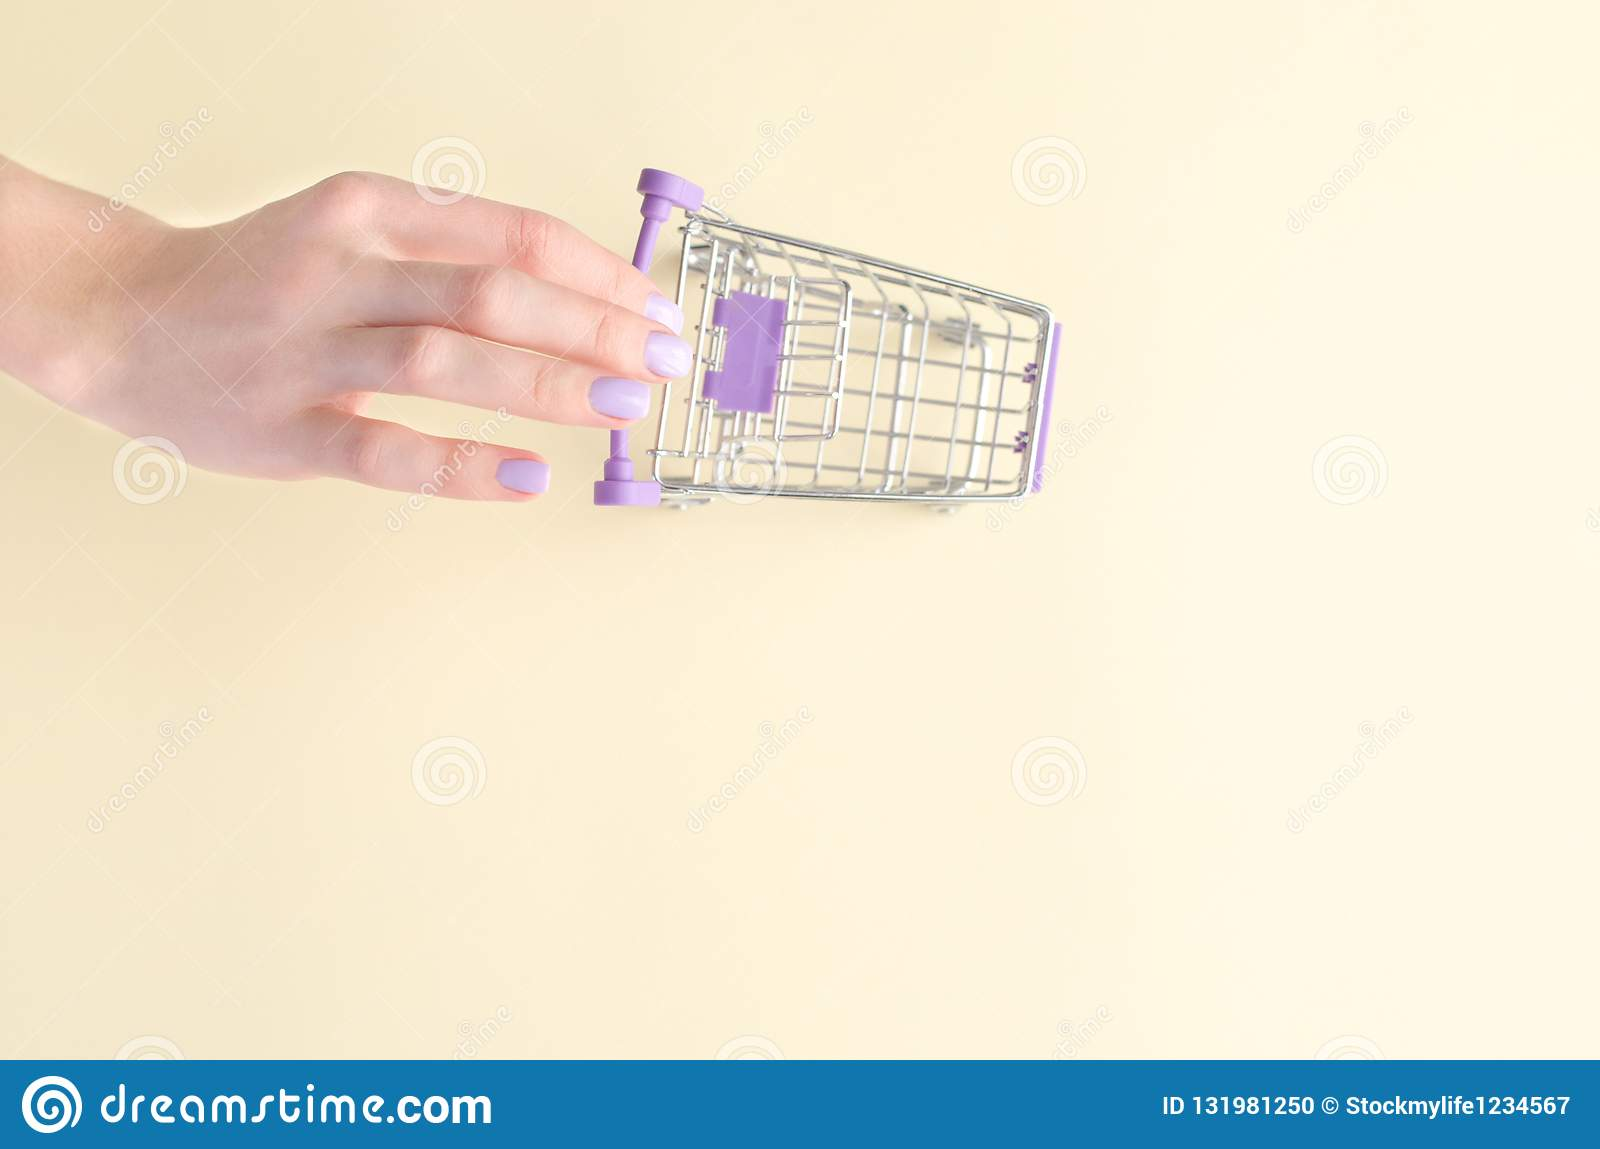 A hand with a miniature shopping trolley.